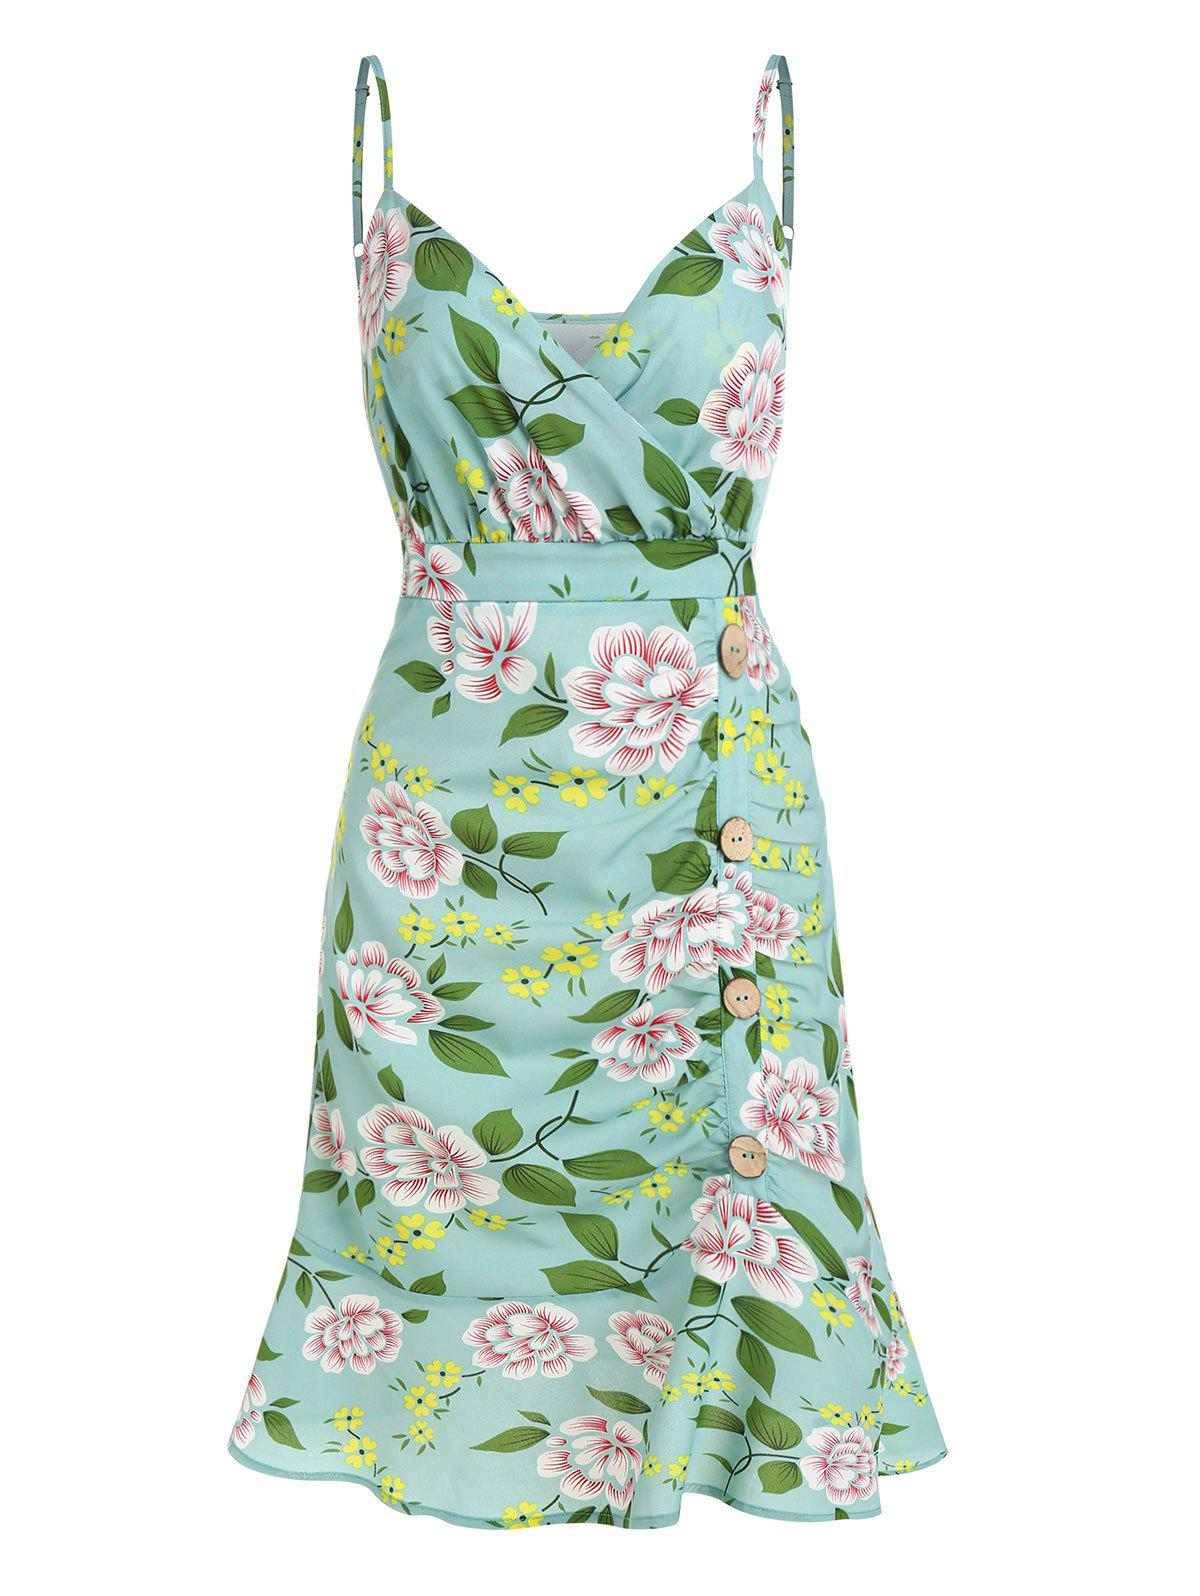 Floral Print Ruched Flounce Cami Dress - CYAN OPAQUE 3XL